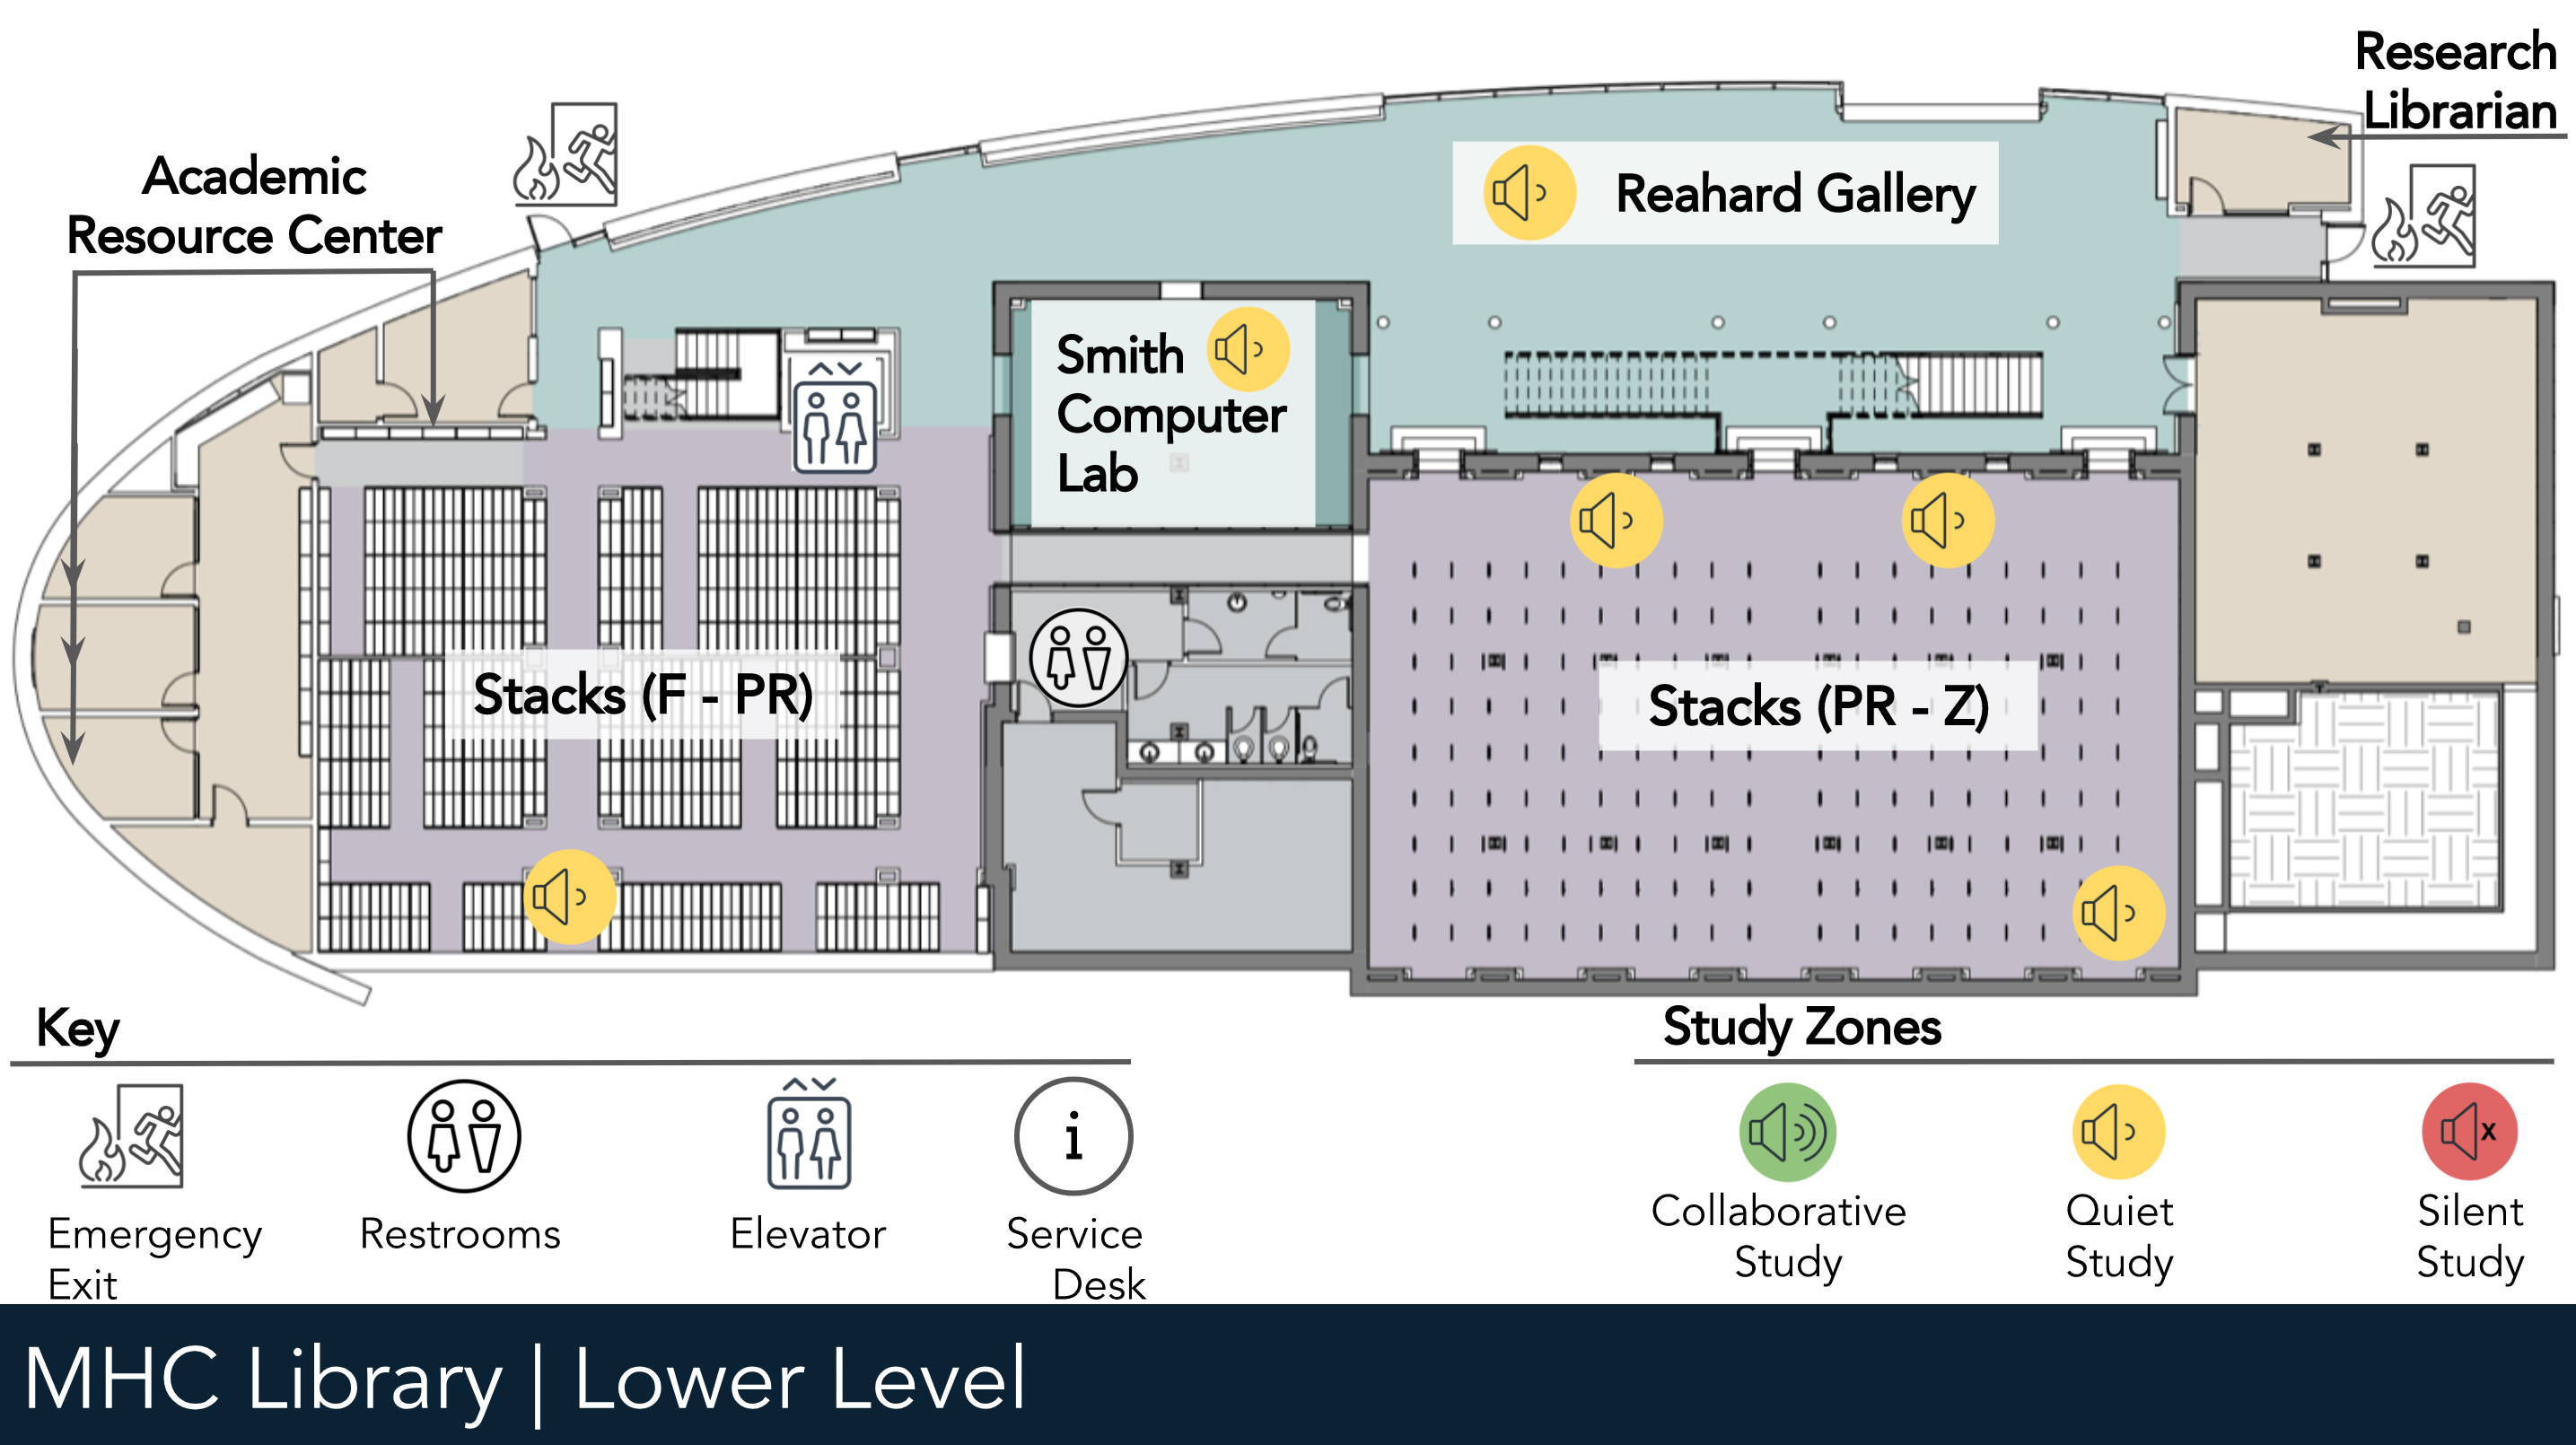 Library Lower Level floor map